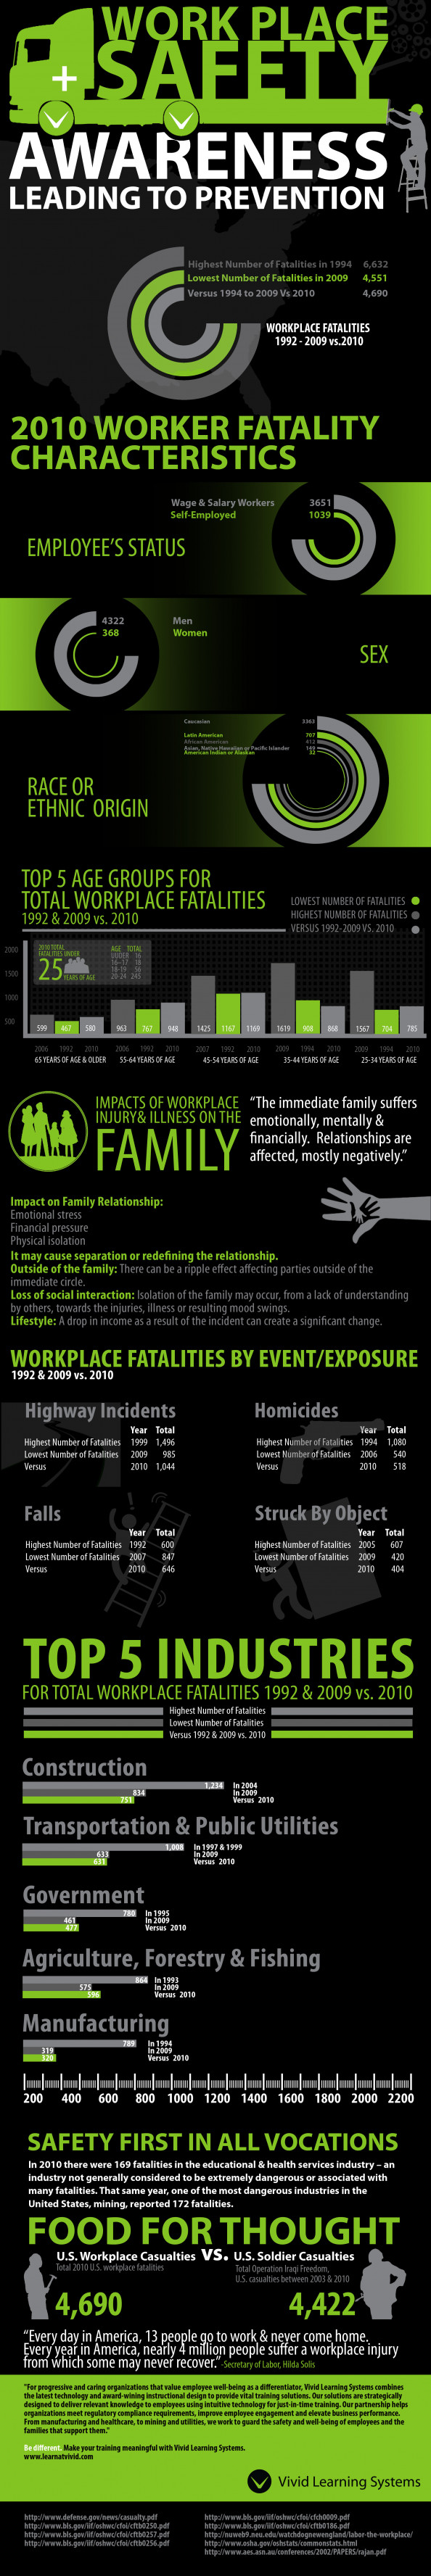 Workplace Safety: Awareness Leading to Prevention Infographic